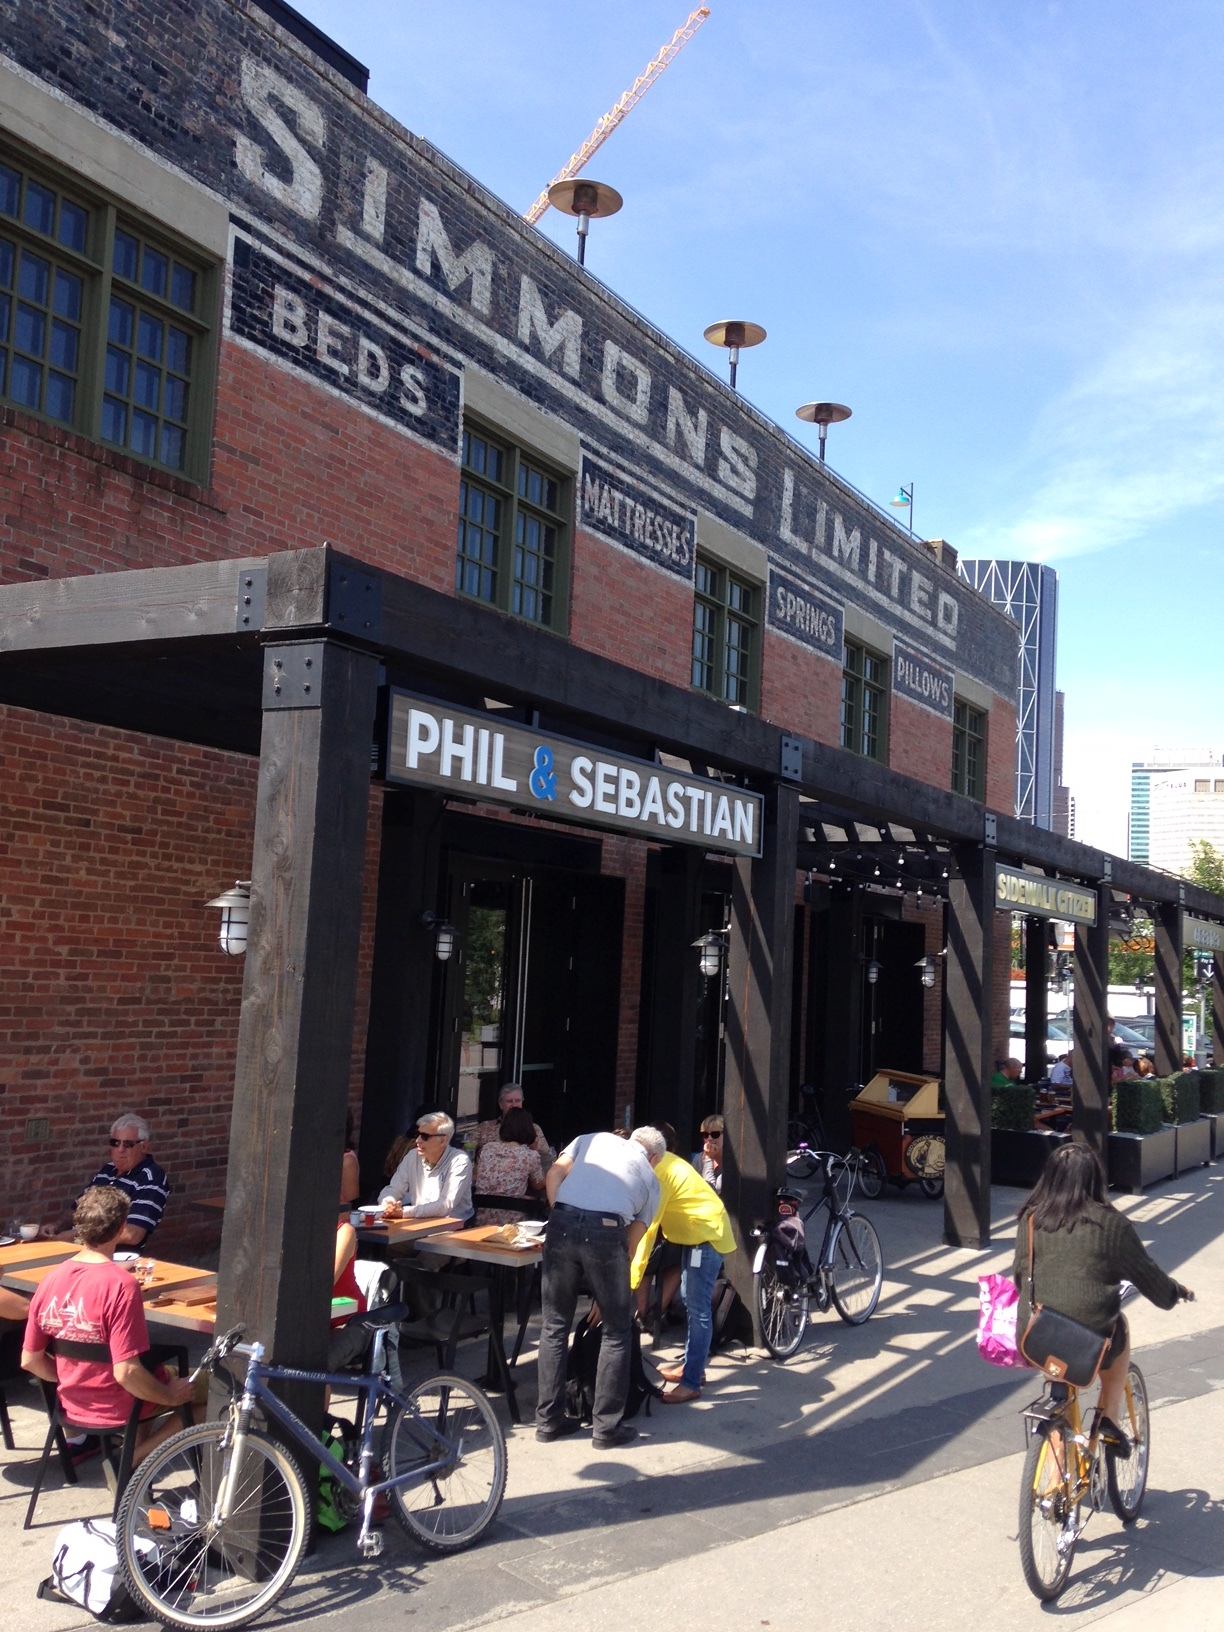 Fortunately, East Village's historic Simmons Building along the East Village Riverwalk, has been renovated to accommodate an upscale restaurant, coffee shop and bakery while retaining its historical character.